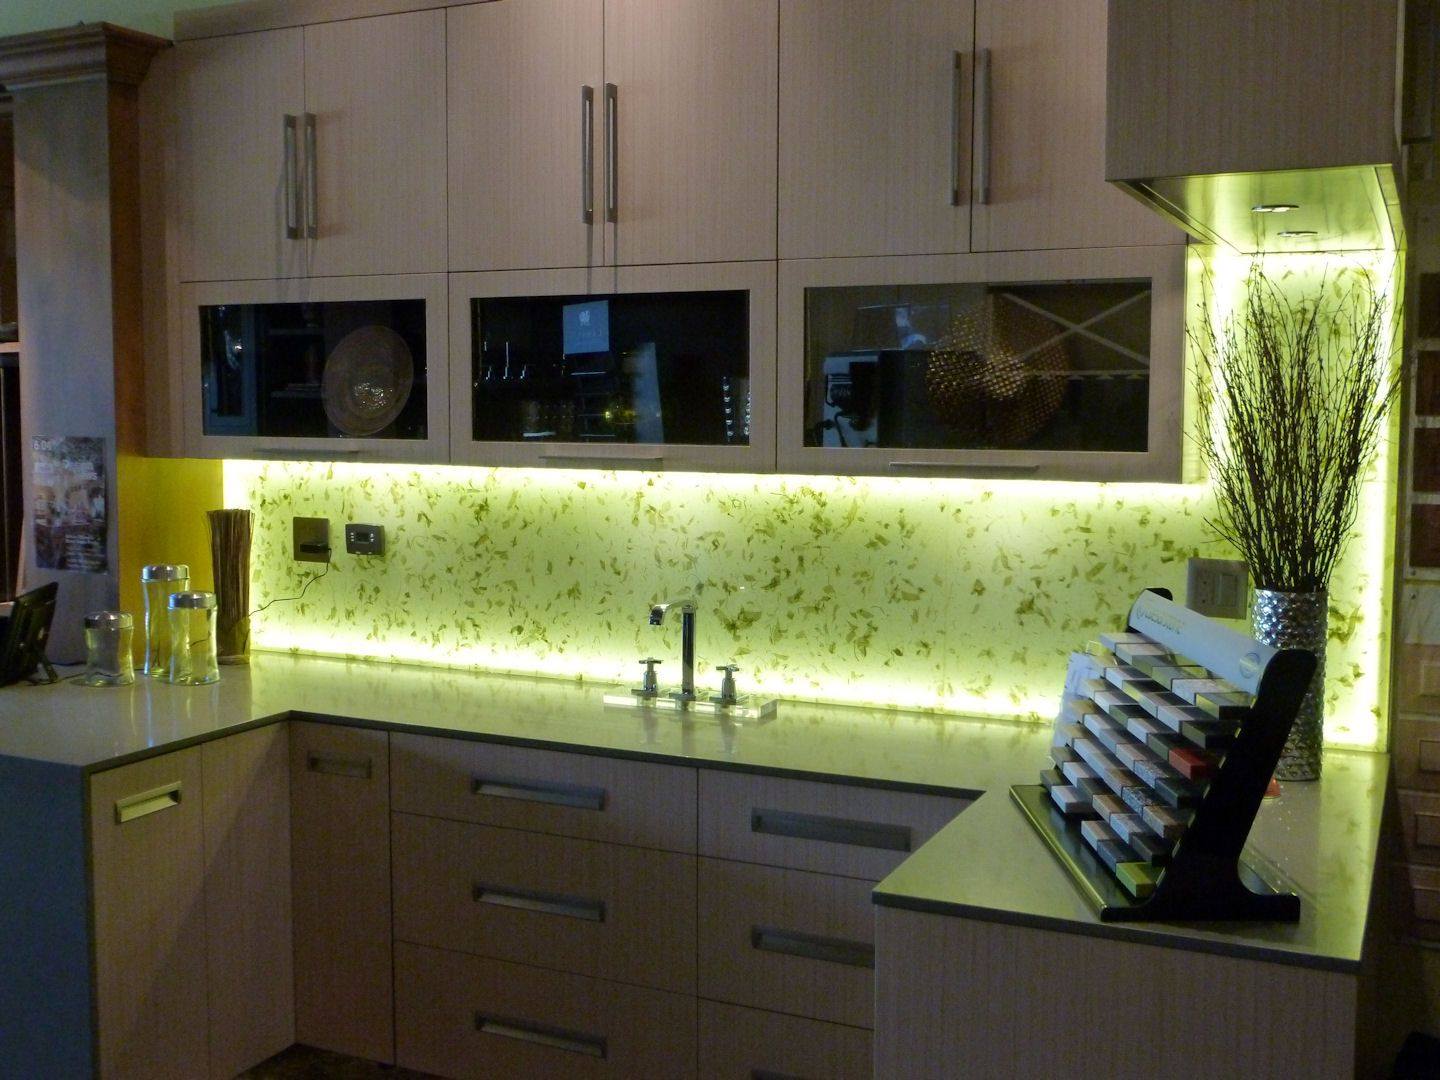 rice paper is laminated between two glass panels and back lit with